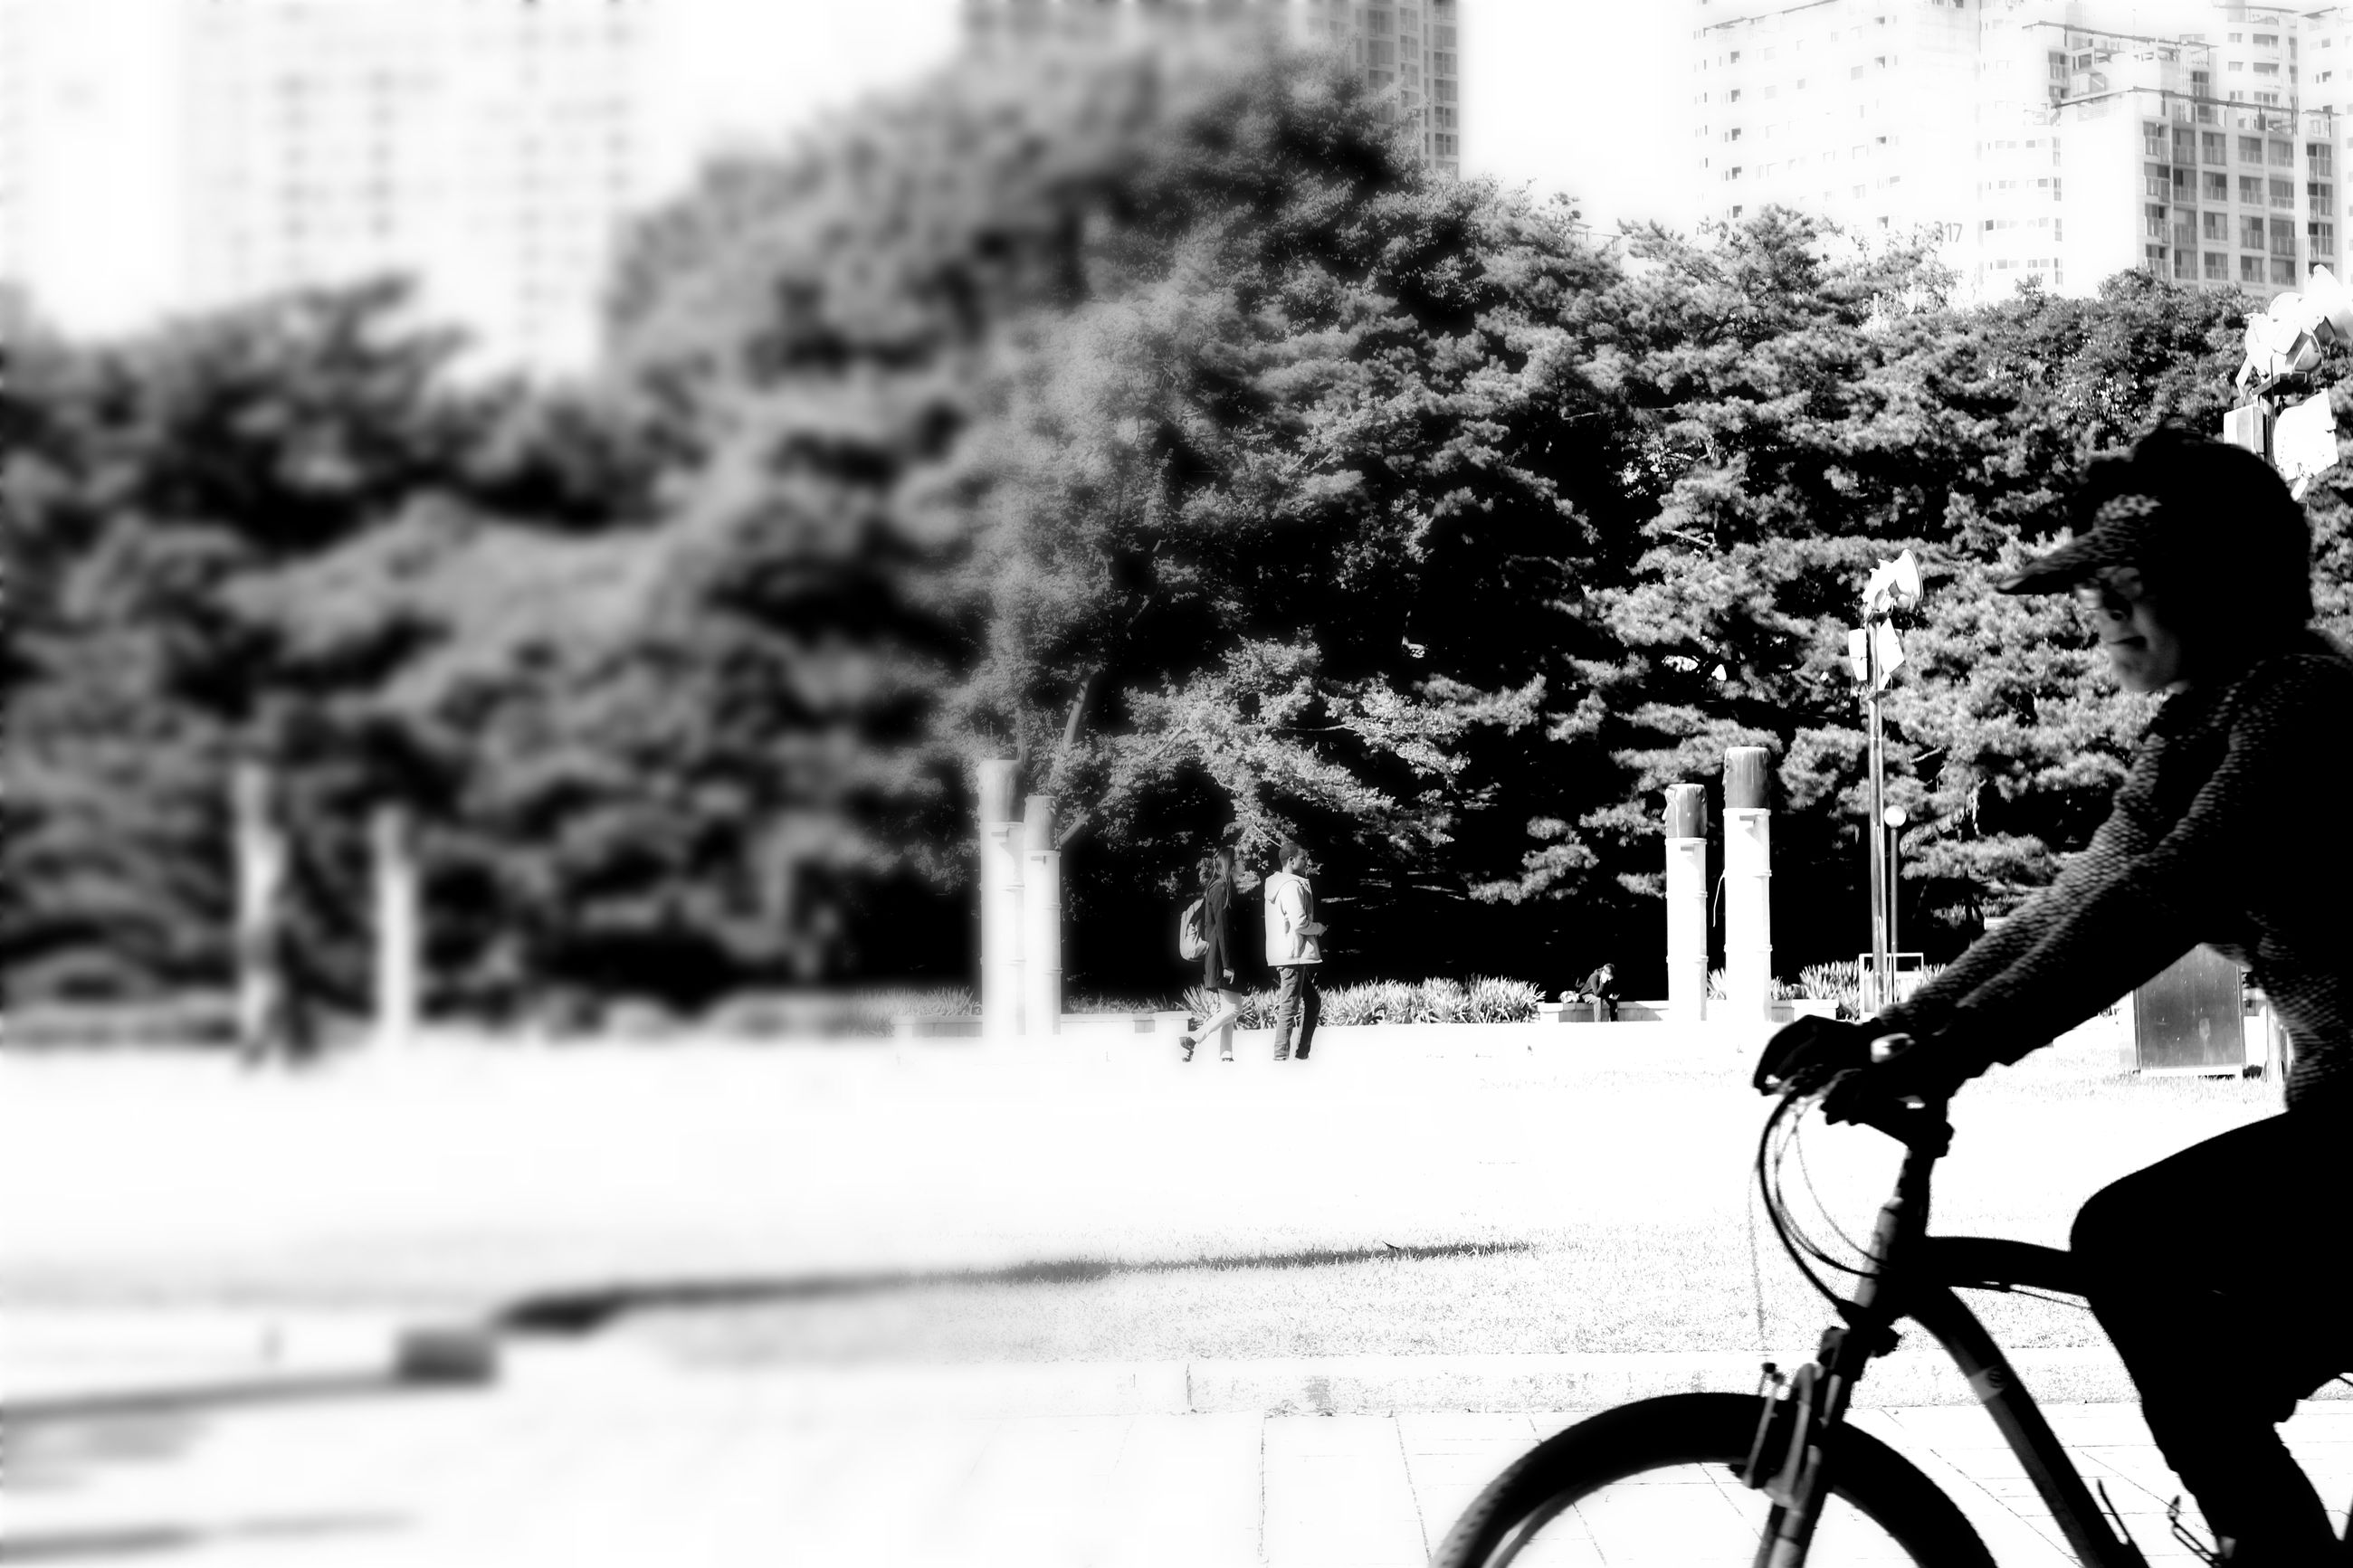 bicycle, mode of transport, tree, transportation, outdoors, city, cycling, day, no people